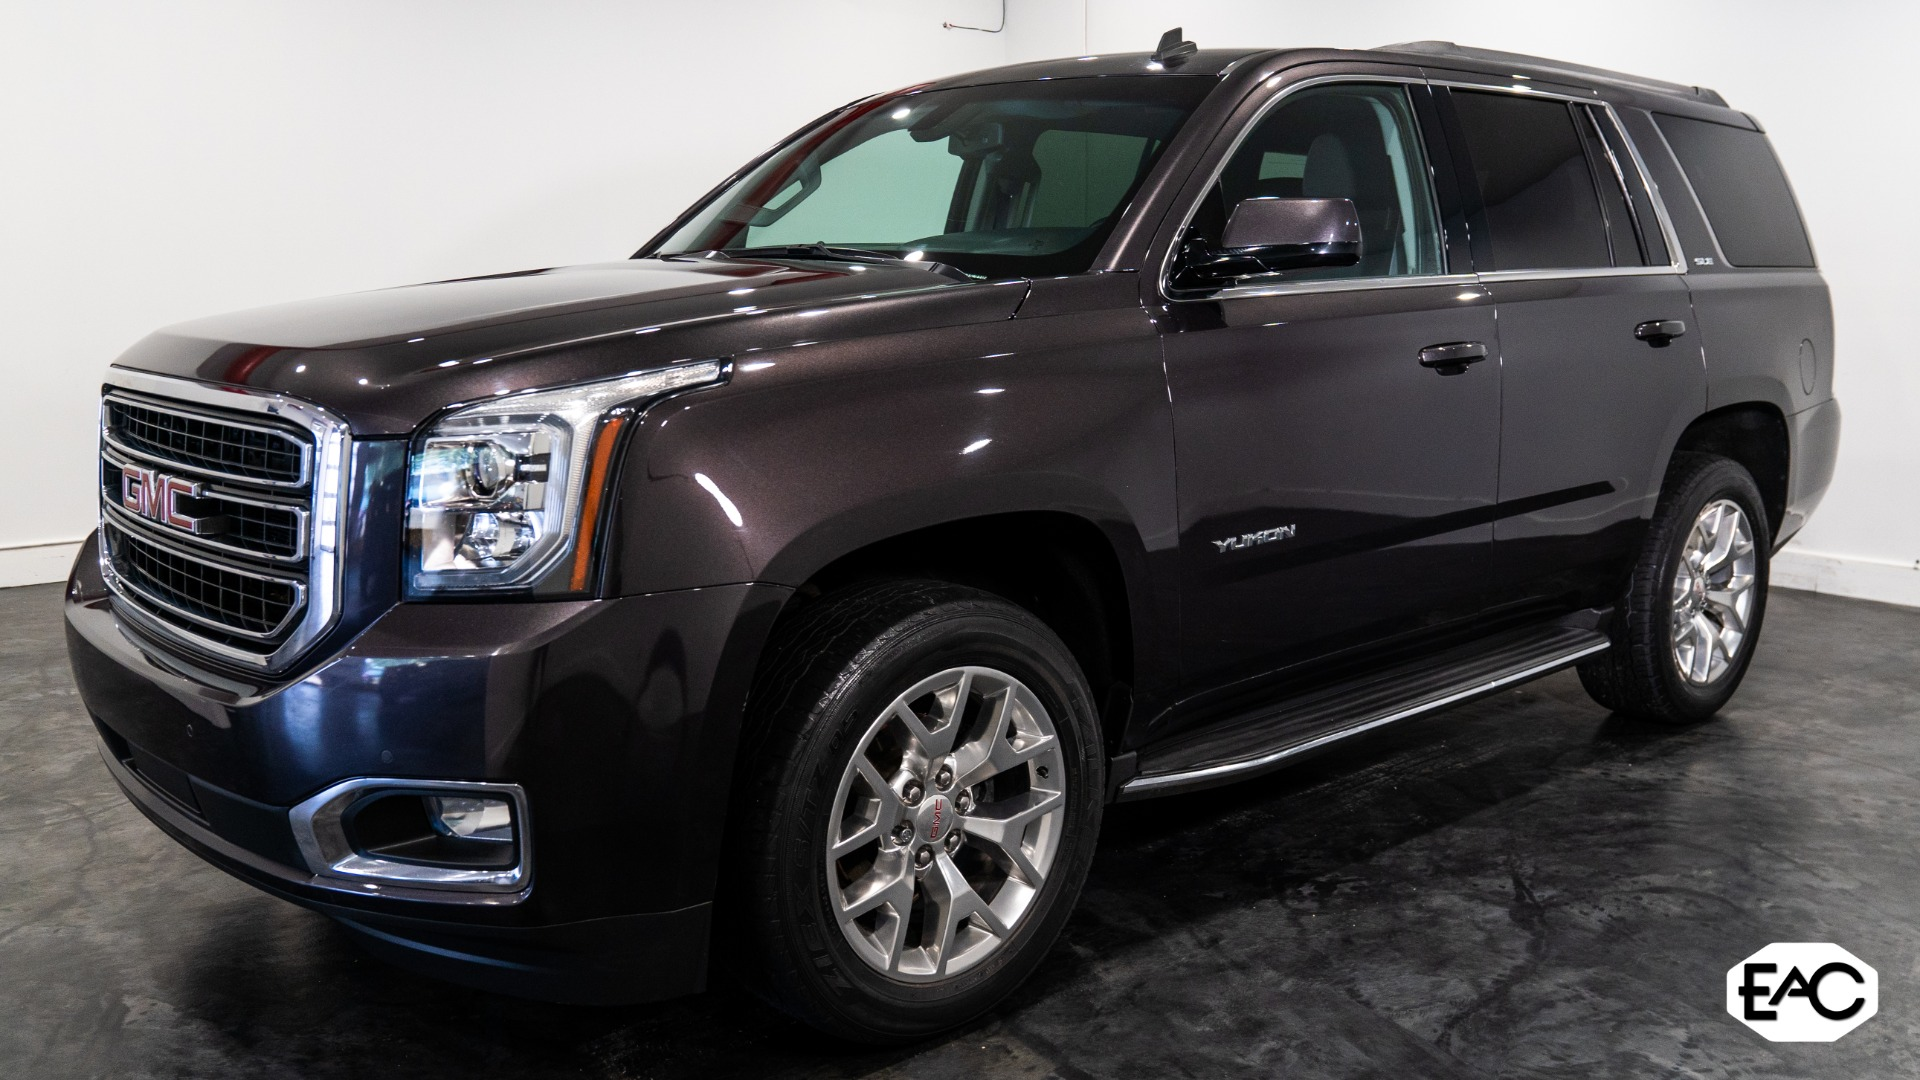 Used 2015 GMC Yukon SLE for sale Sold at Empire Auto Collection in Warren MI 48091 1